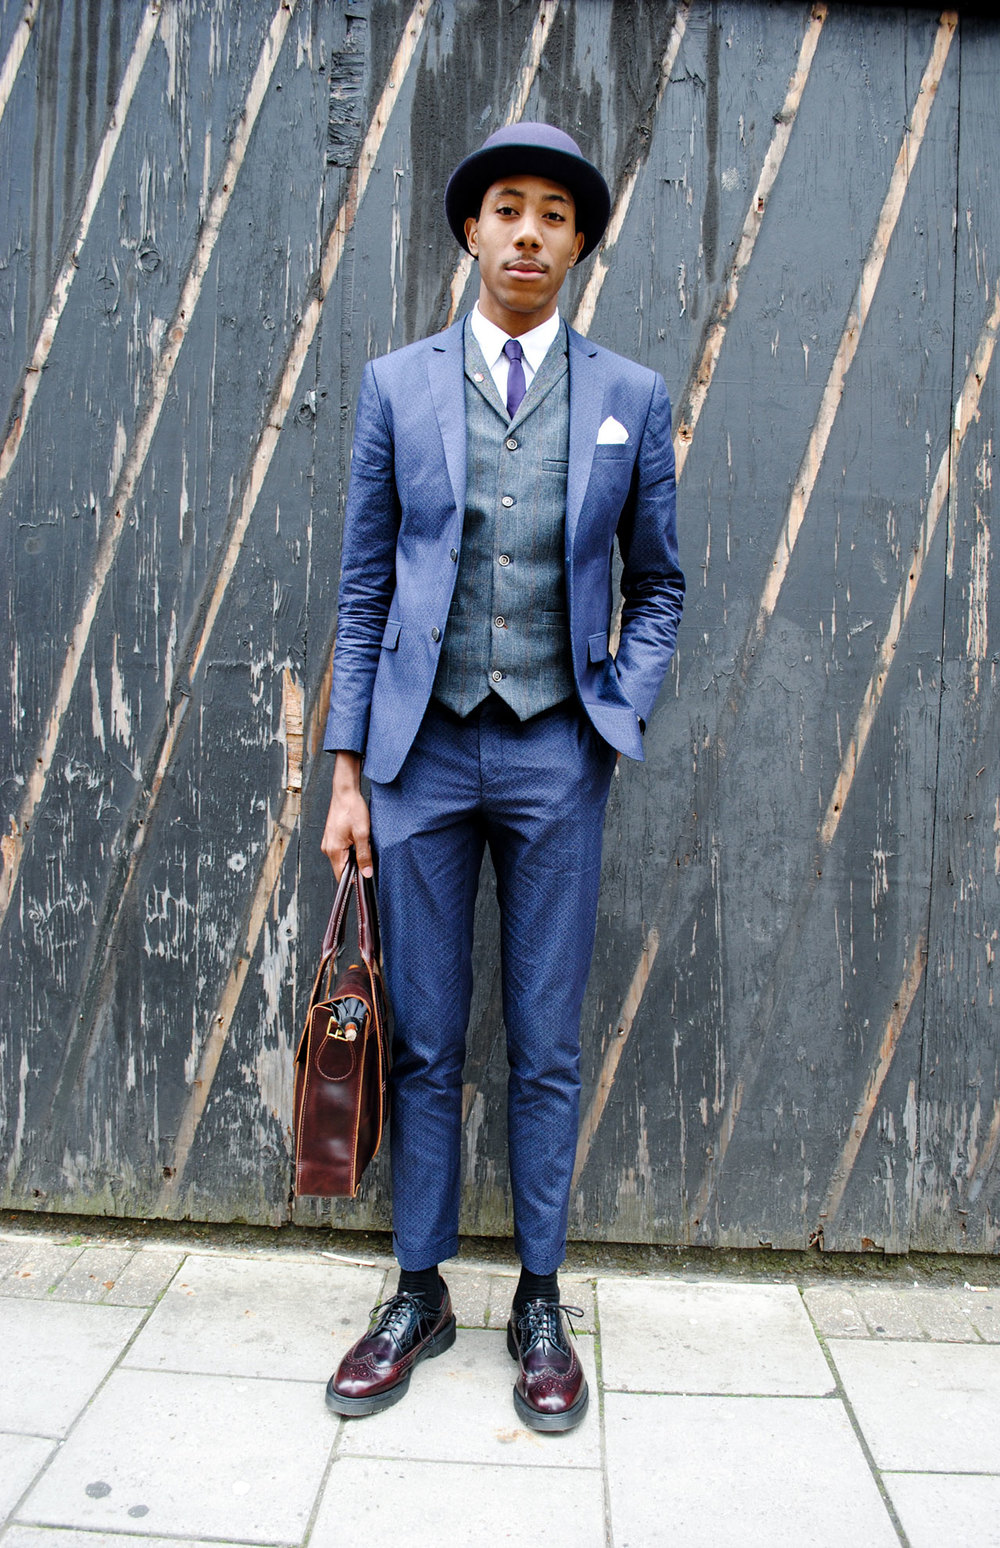 sartorial-suits-street-style-london-collections-men-ss13-2013-_-4.jpg